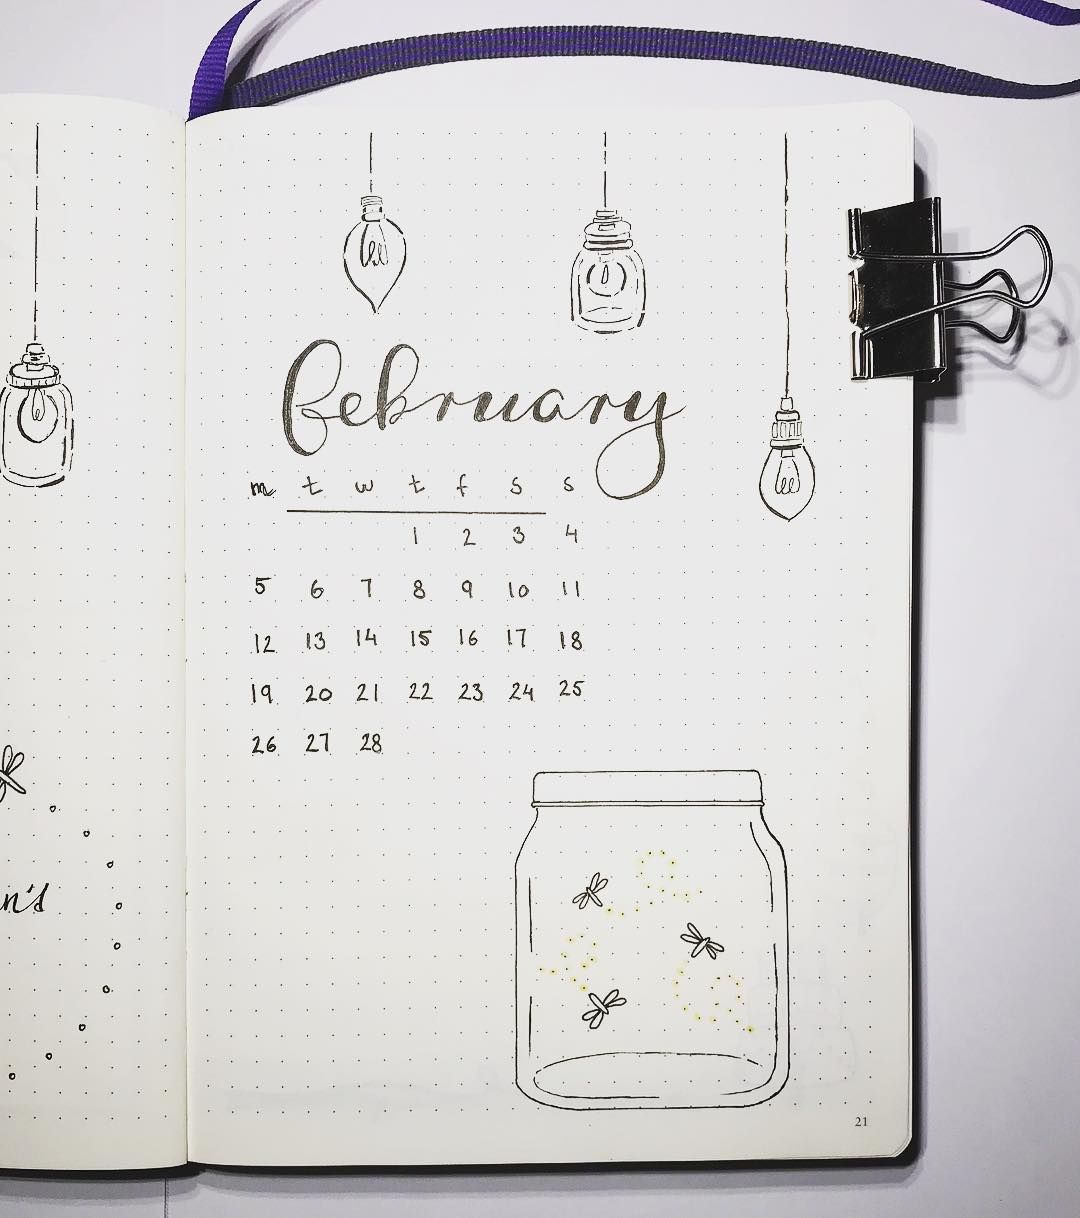 small resolution of bullet journal monthly cover page february cover page fireflies in a jar drawing lightbulb drawings nordic notes